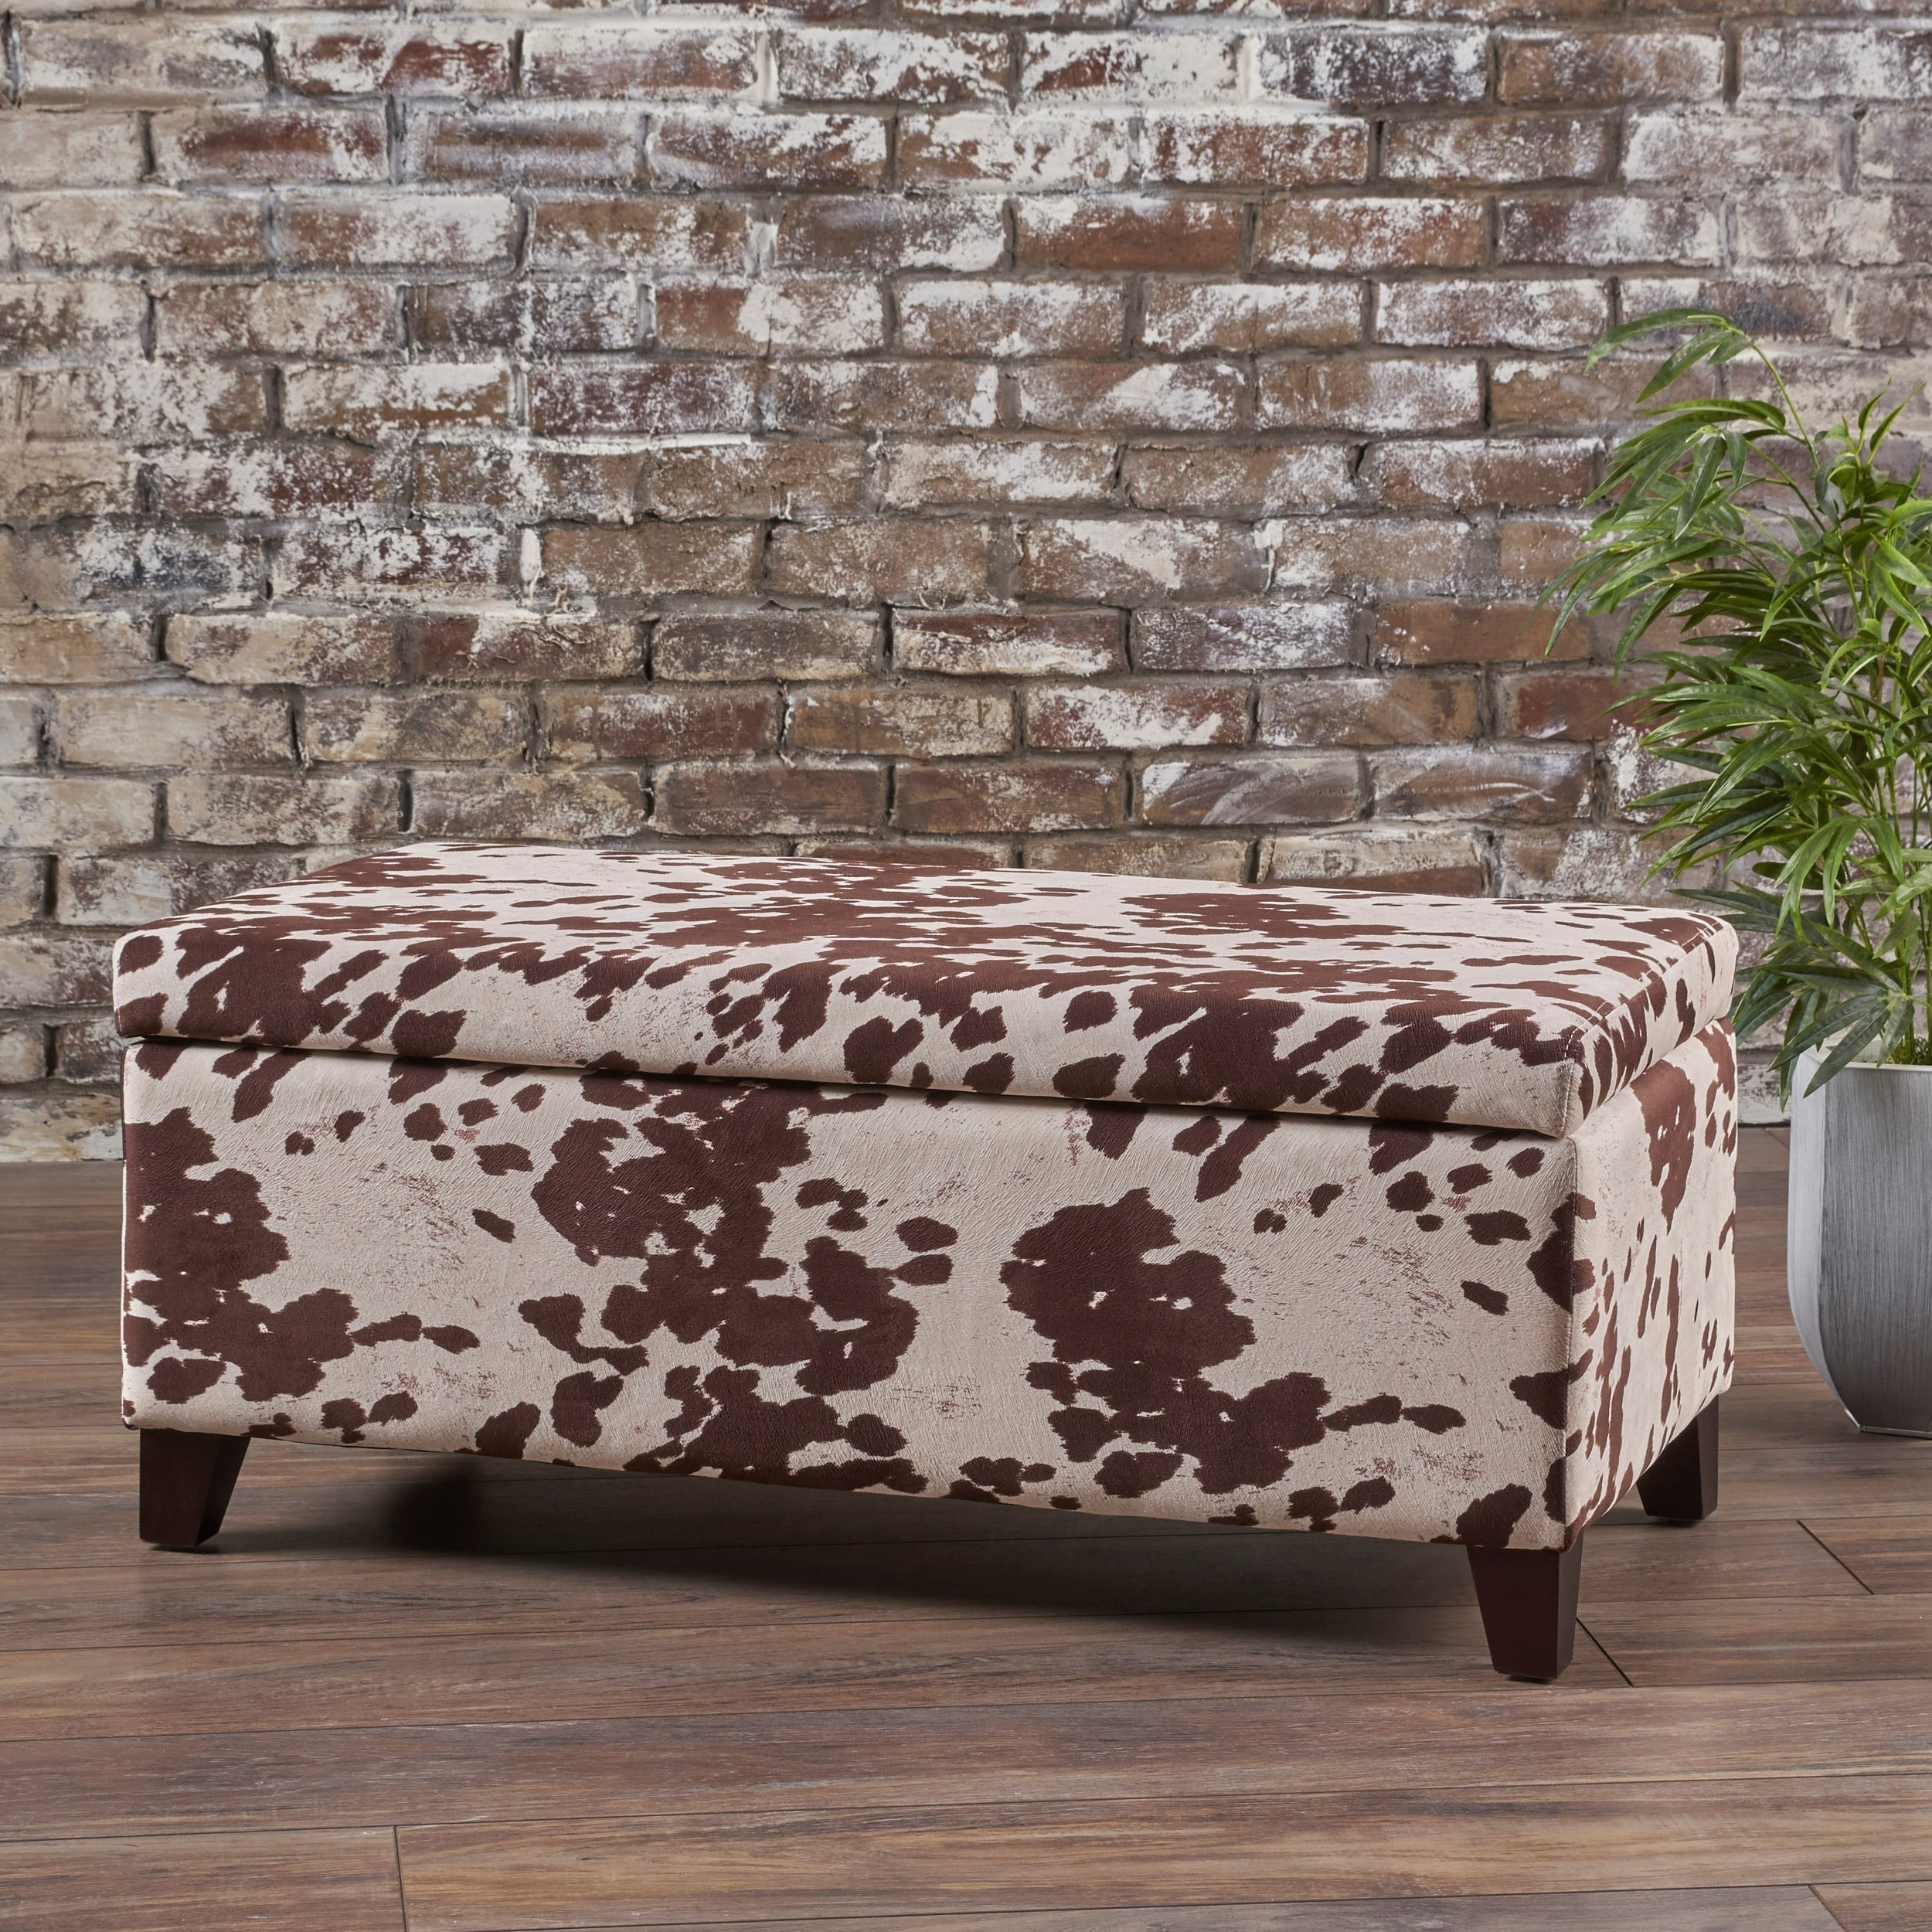 Pleasant Details About Breanna Velvet Cow Print Storage Ottoman Bench By Christopher Knight Home Dailytribune Chair Design For Home Dailytribuneorg